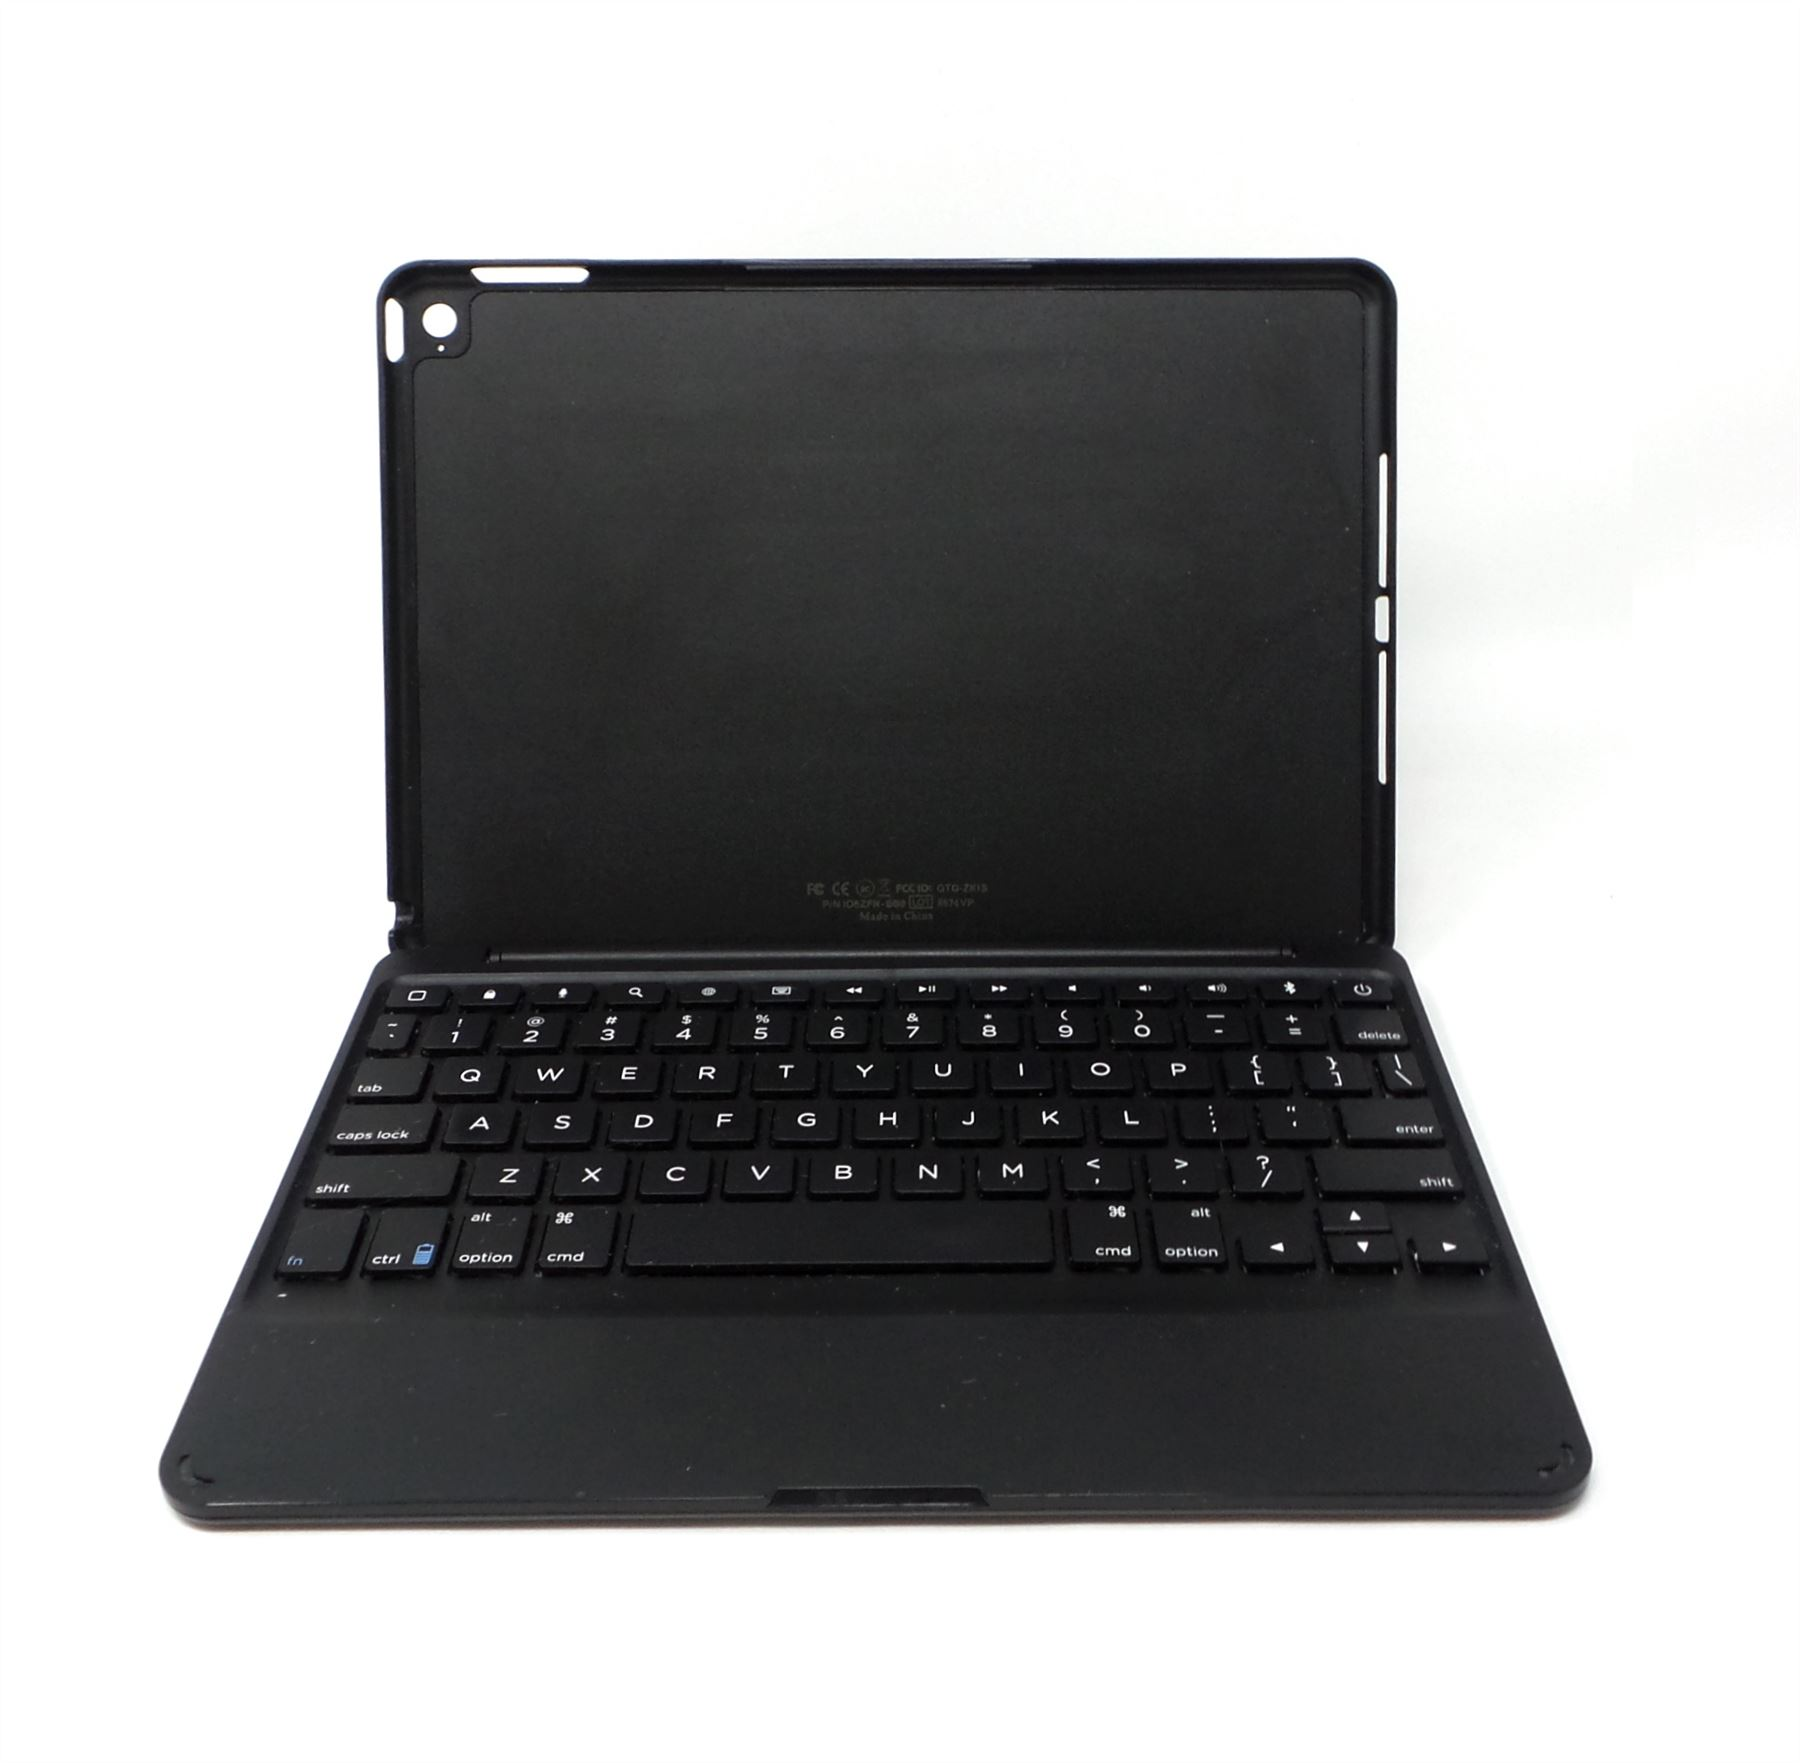 low priced 07f2e 96d38 Details about Zagg Folio Tablet Keyboard Case For Apple iPad Air 2  ID6ZFN-BB0 Black